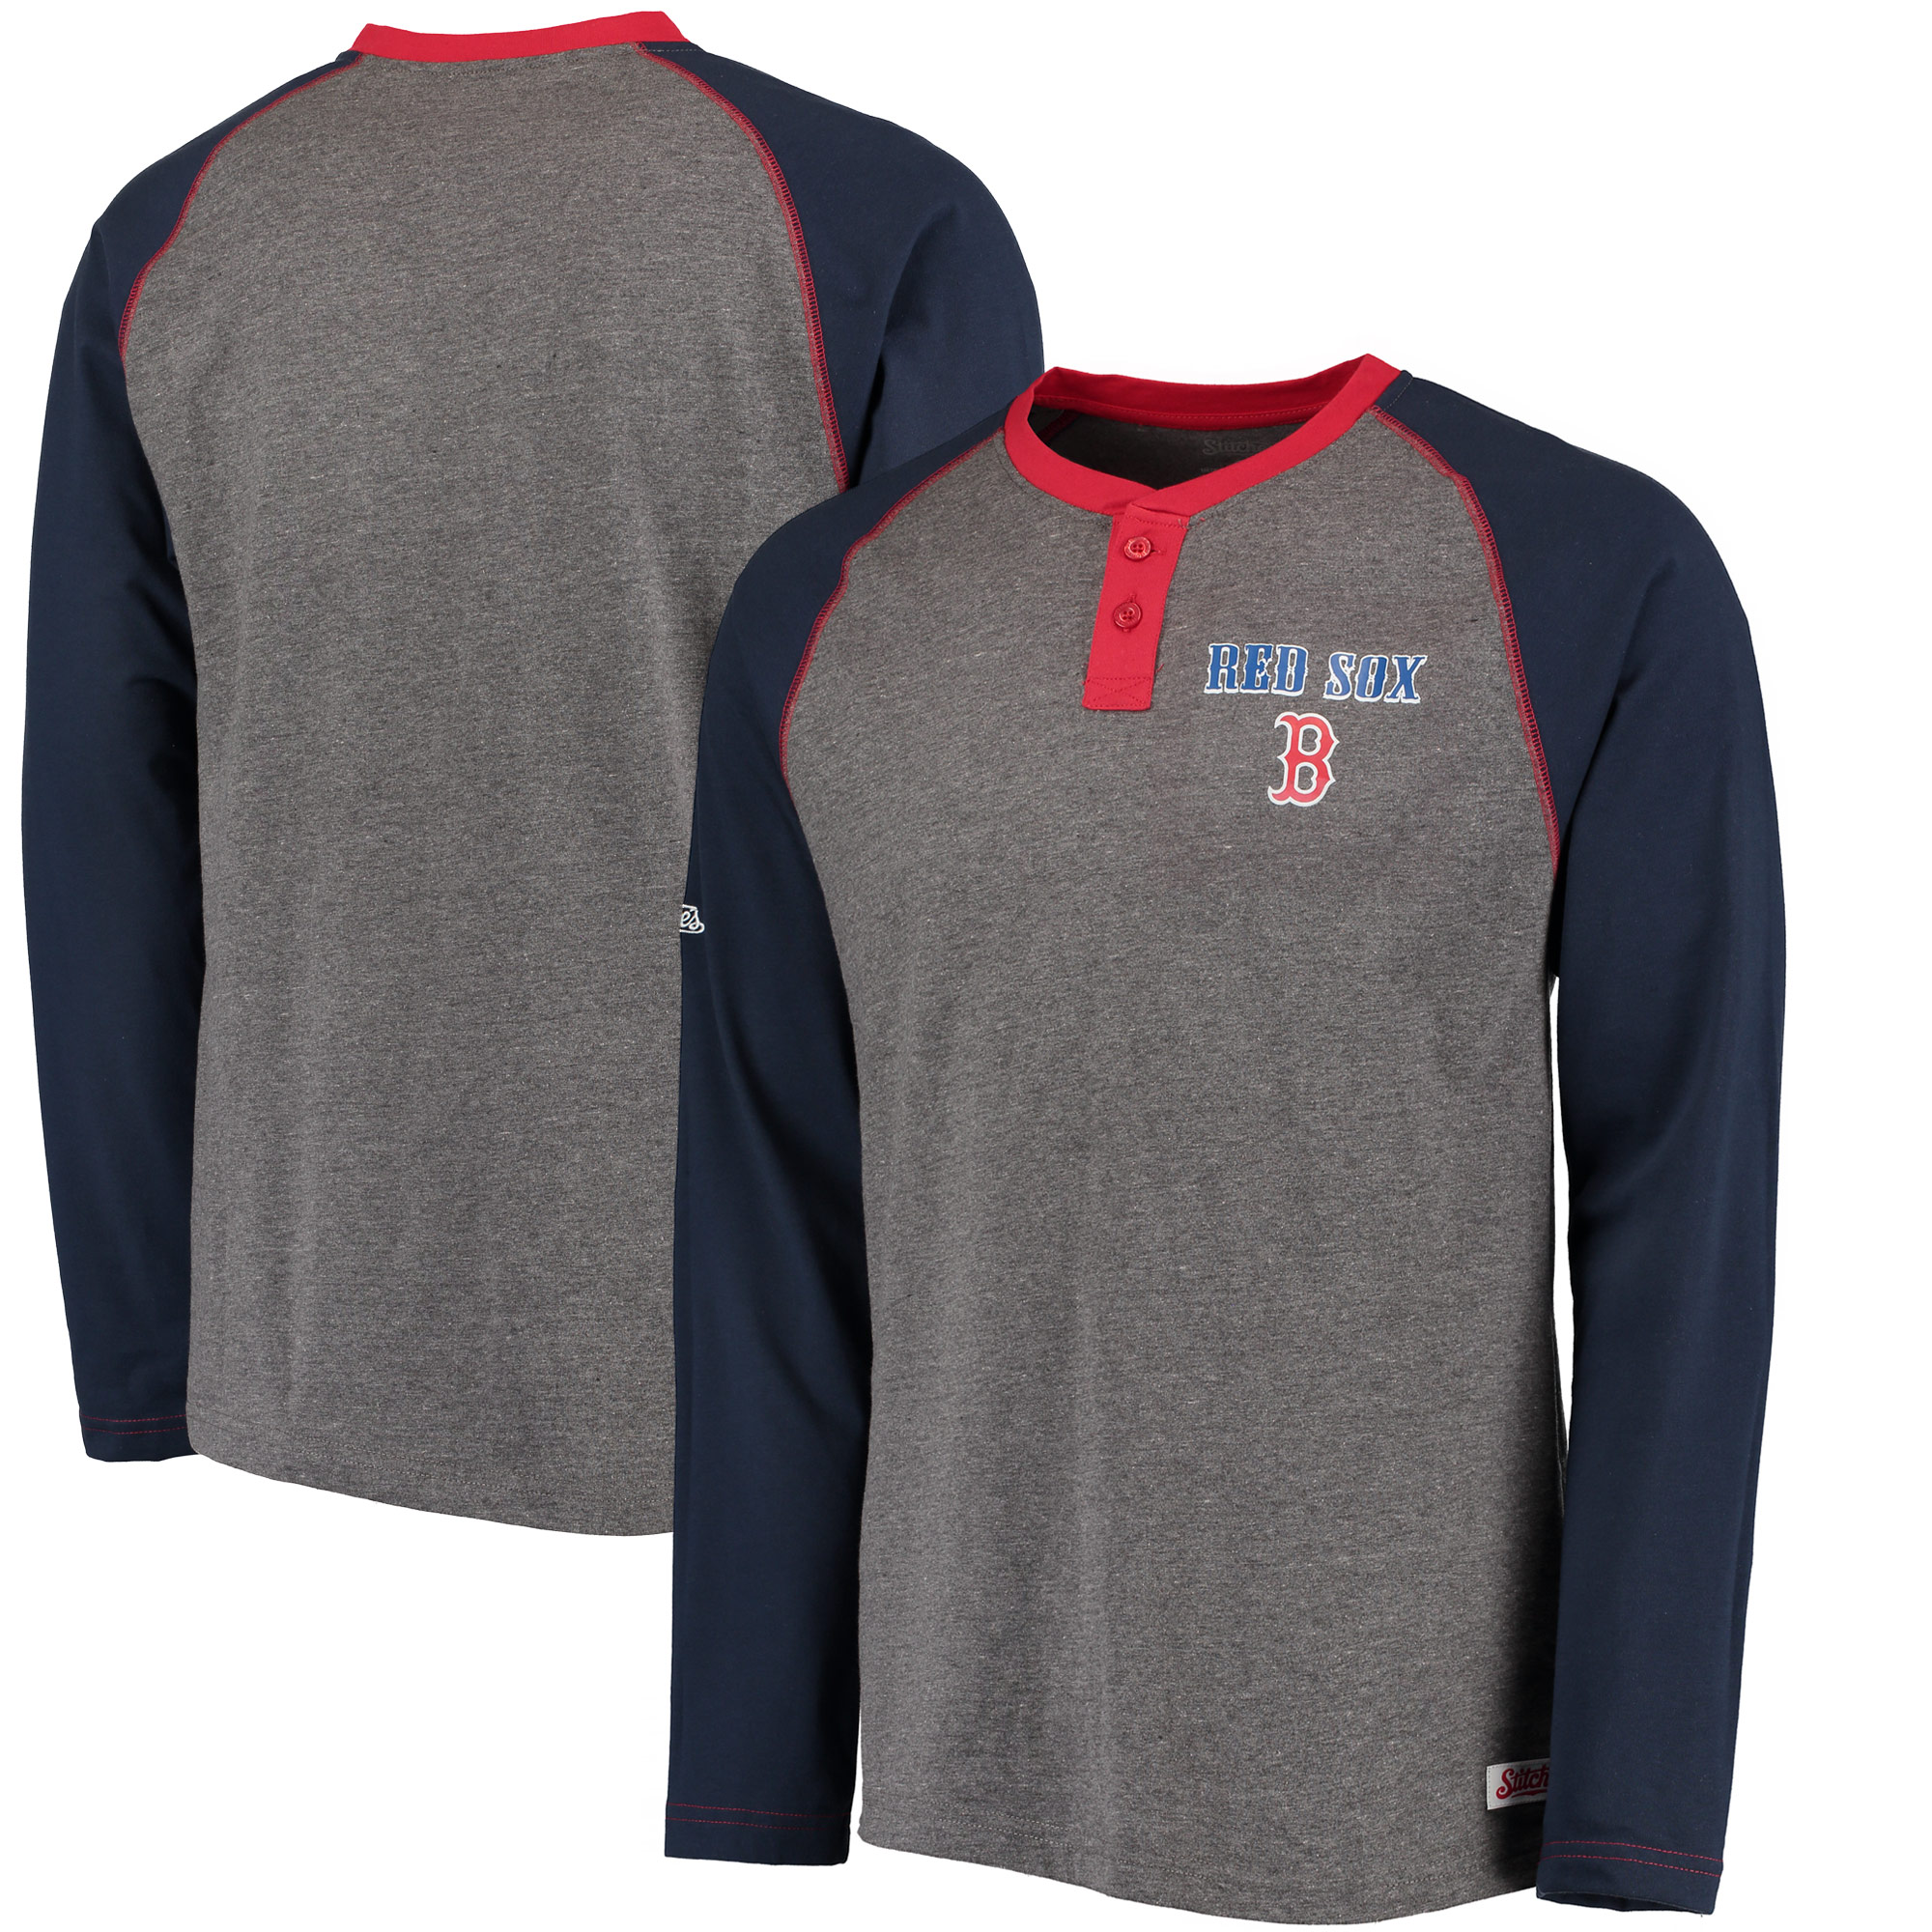 Boston Red Sox Stitches Home Run Long Sleeve Henley T-Shirt - Heathered Gray/Navy